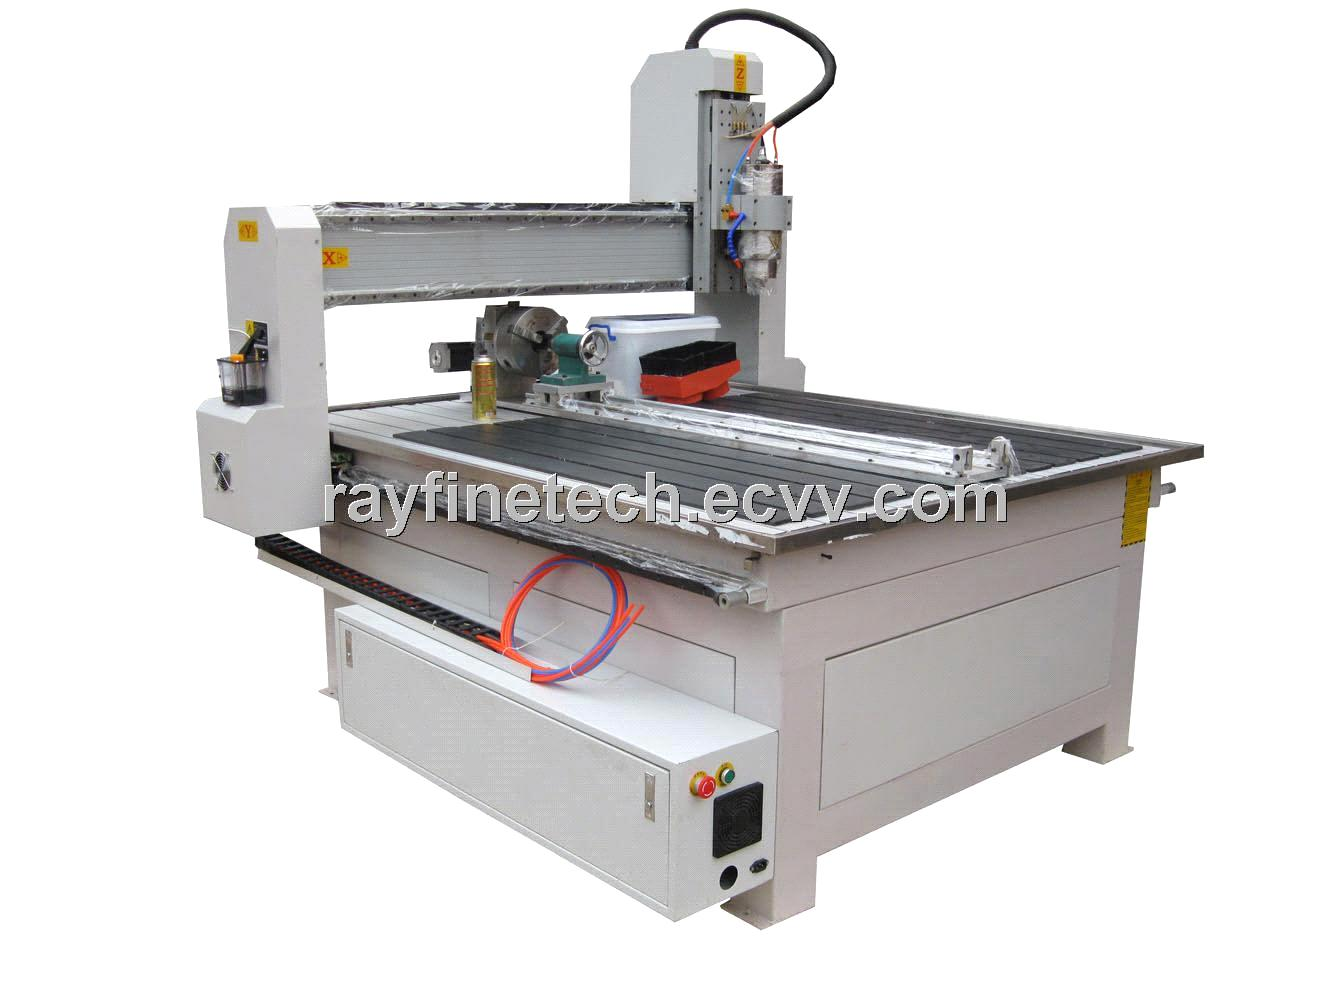 Axis wood mdf plywood cnc cutting router machine rf